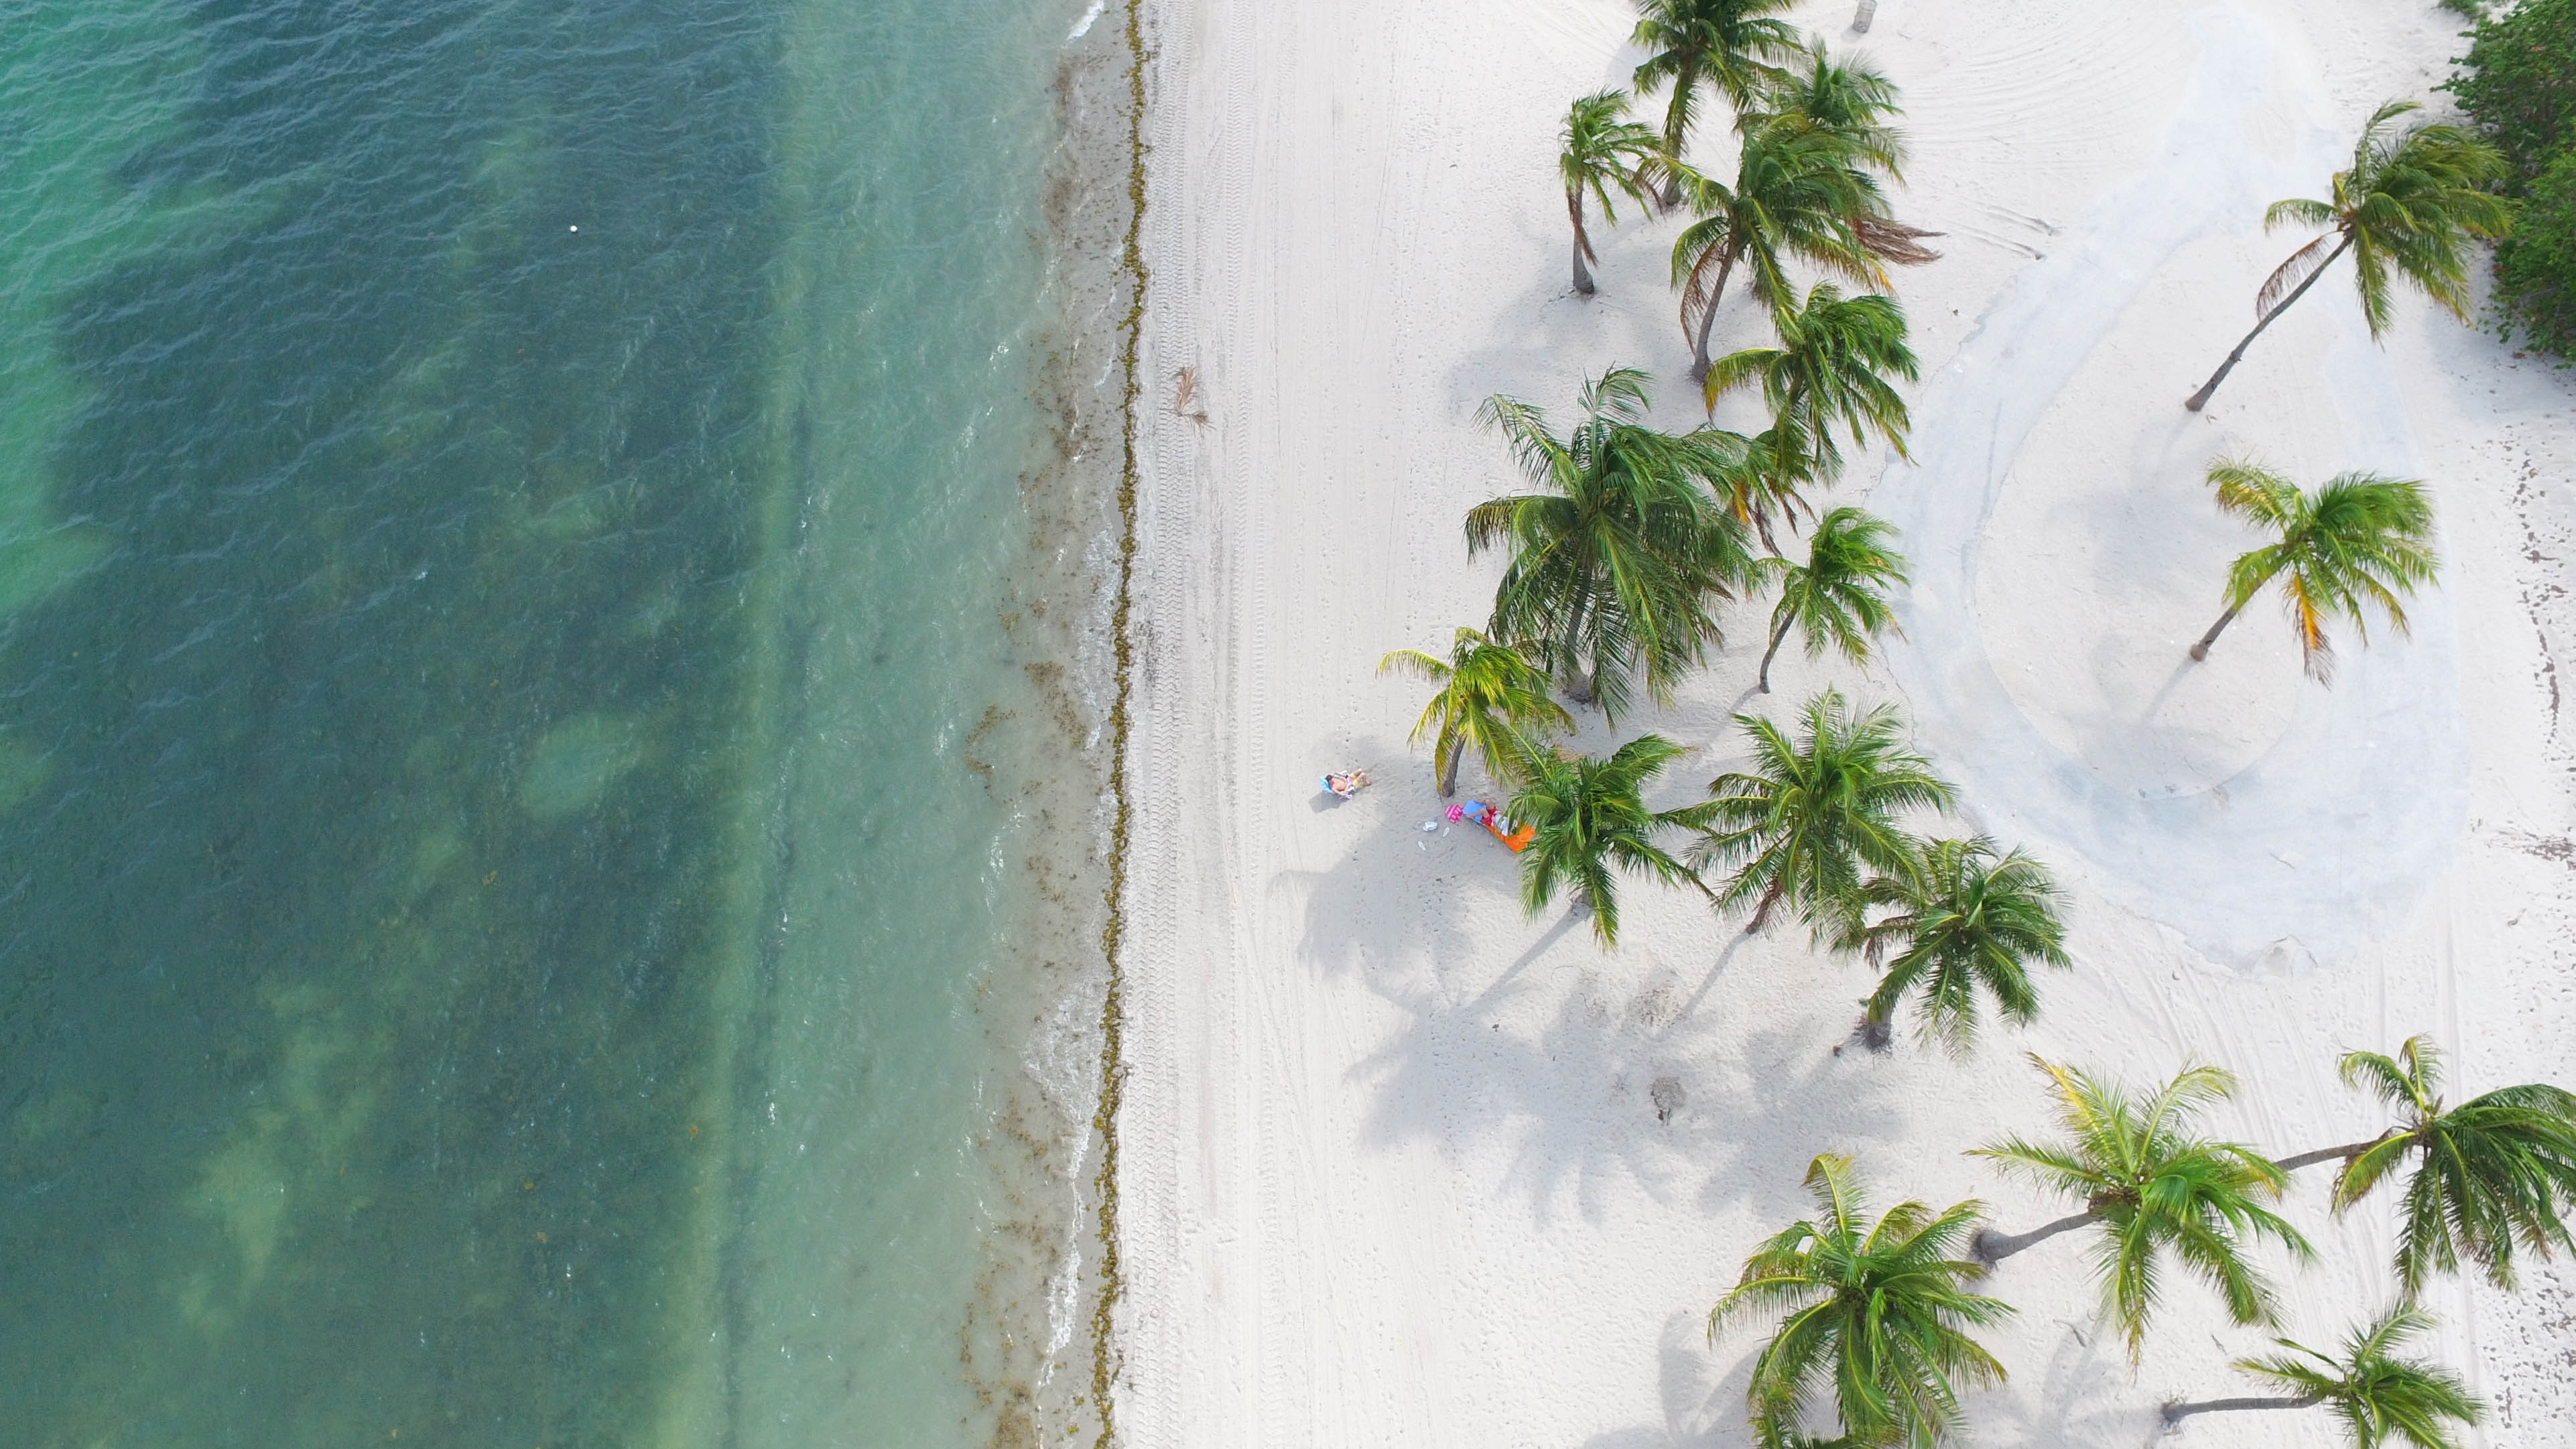 A drone shot of a person relaxing in the shade of palm trees on a white beach